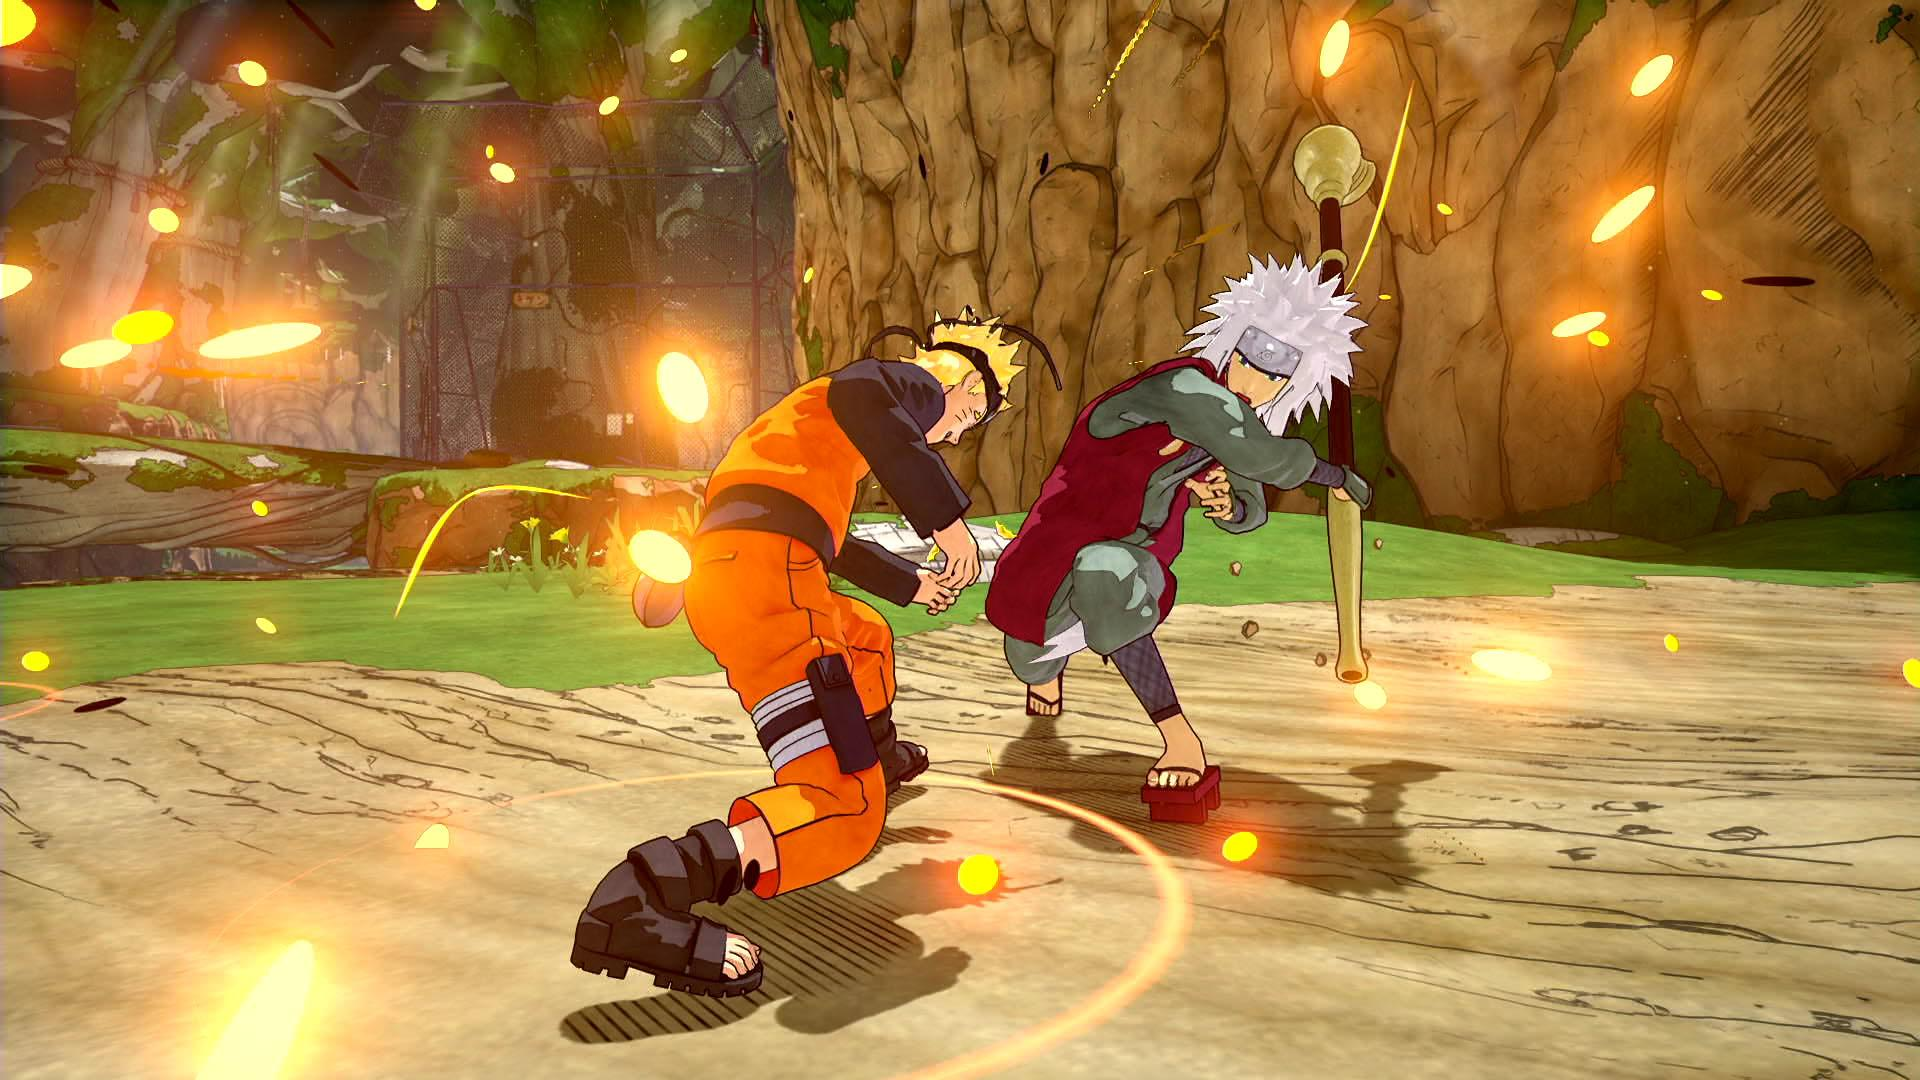 Boruto Naruto Next Generations Episode 177 Live Stream Where To Watch Online With Spoilers